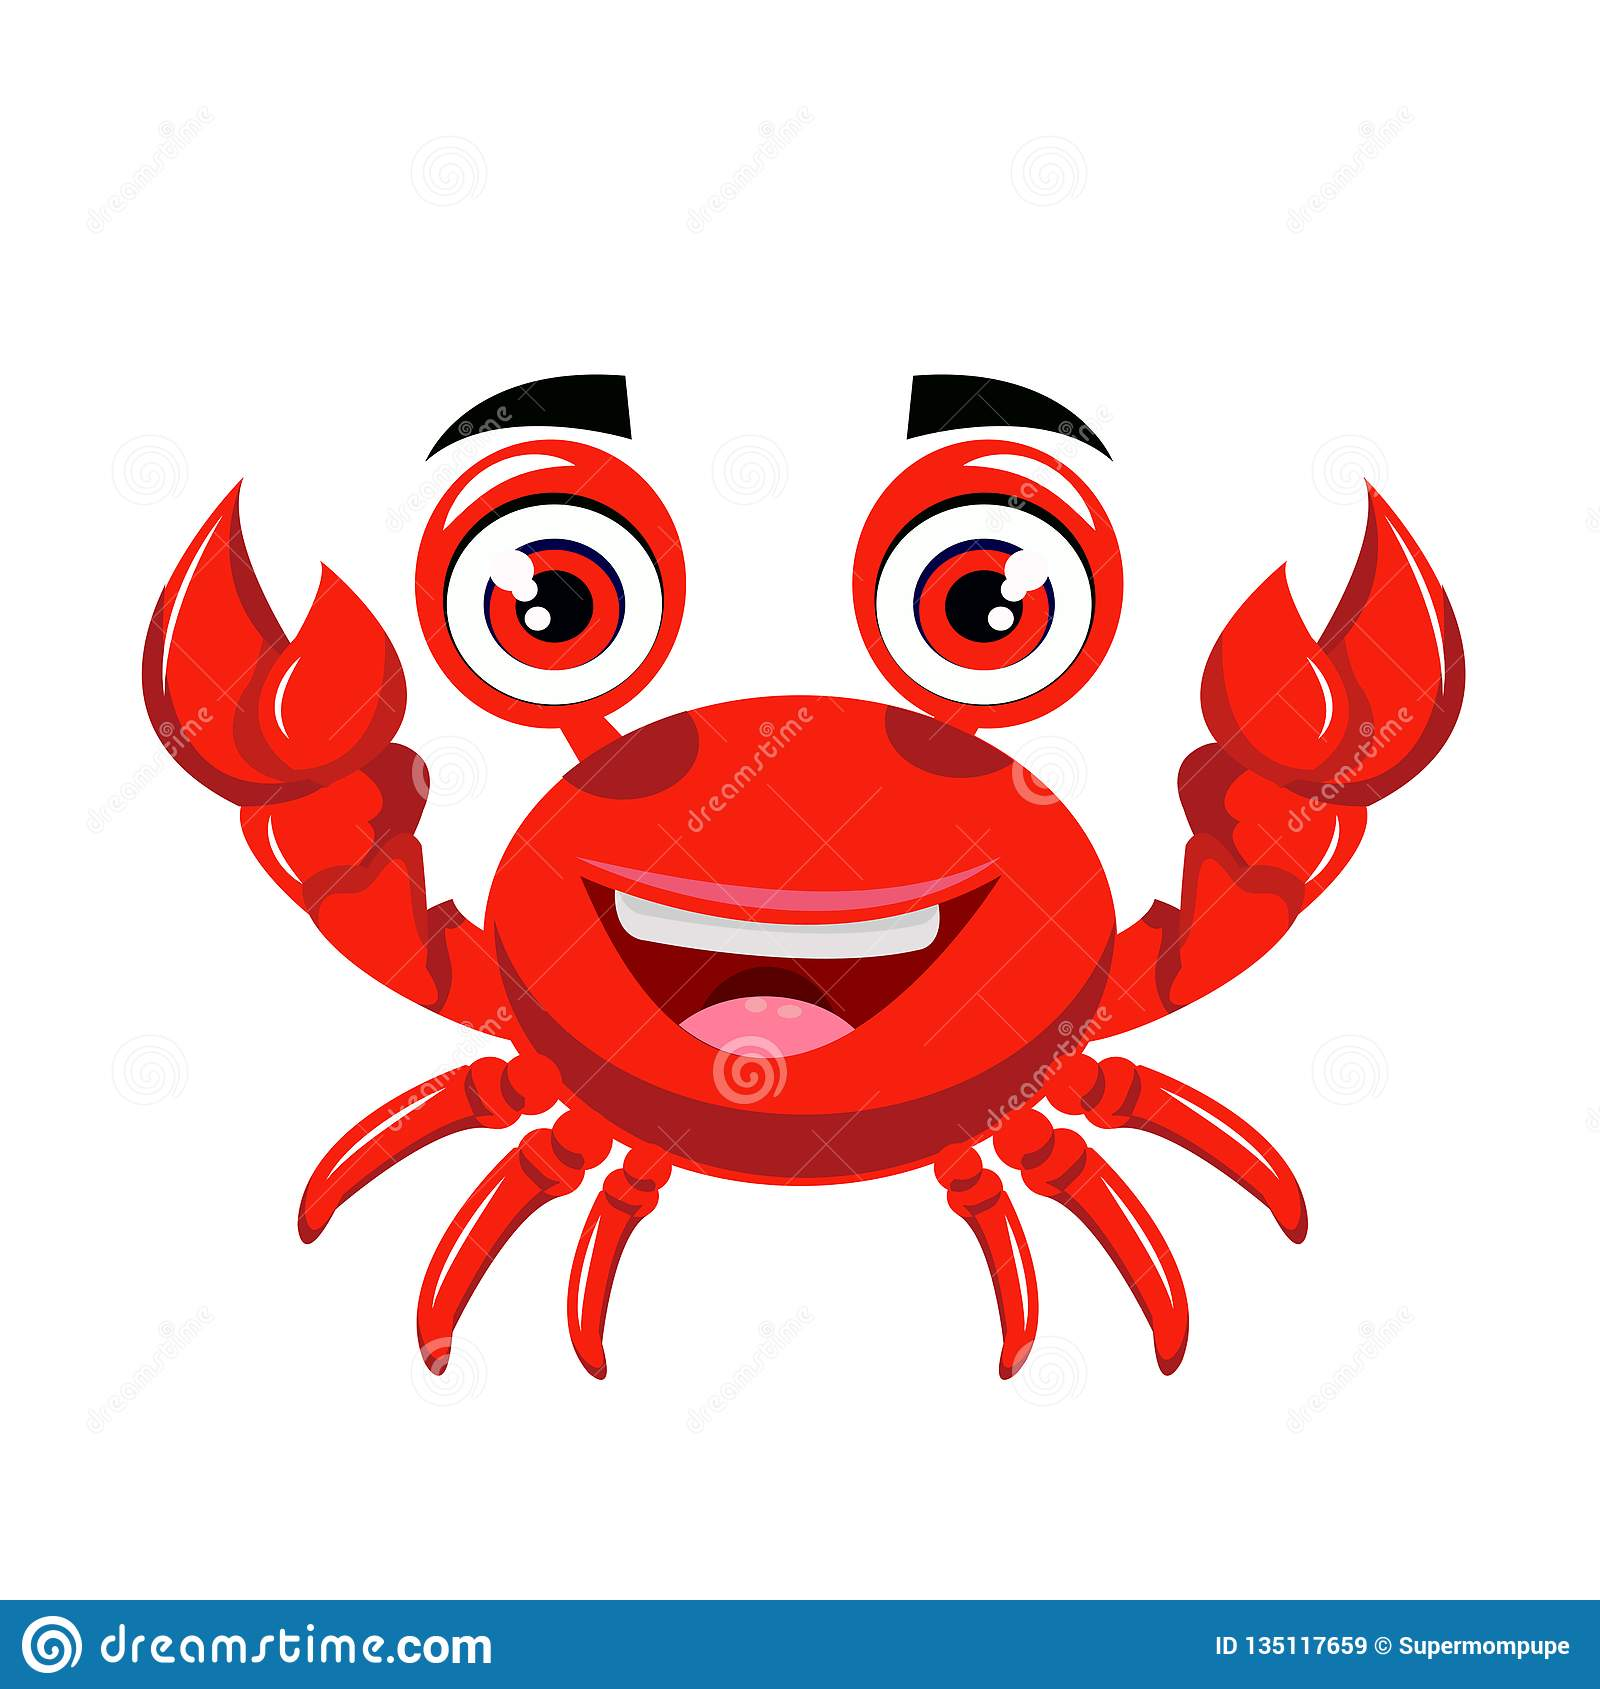 Crab Cartoon Or Crab Clipart Cartoon Isolated On White Background.